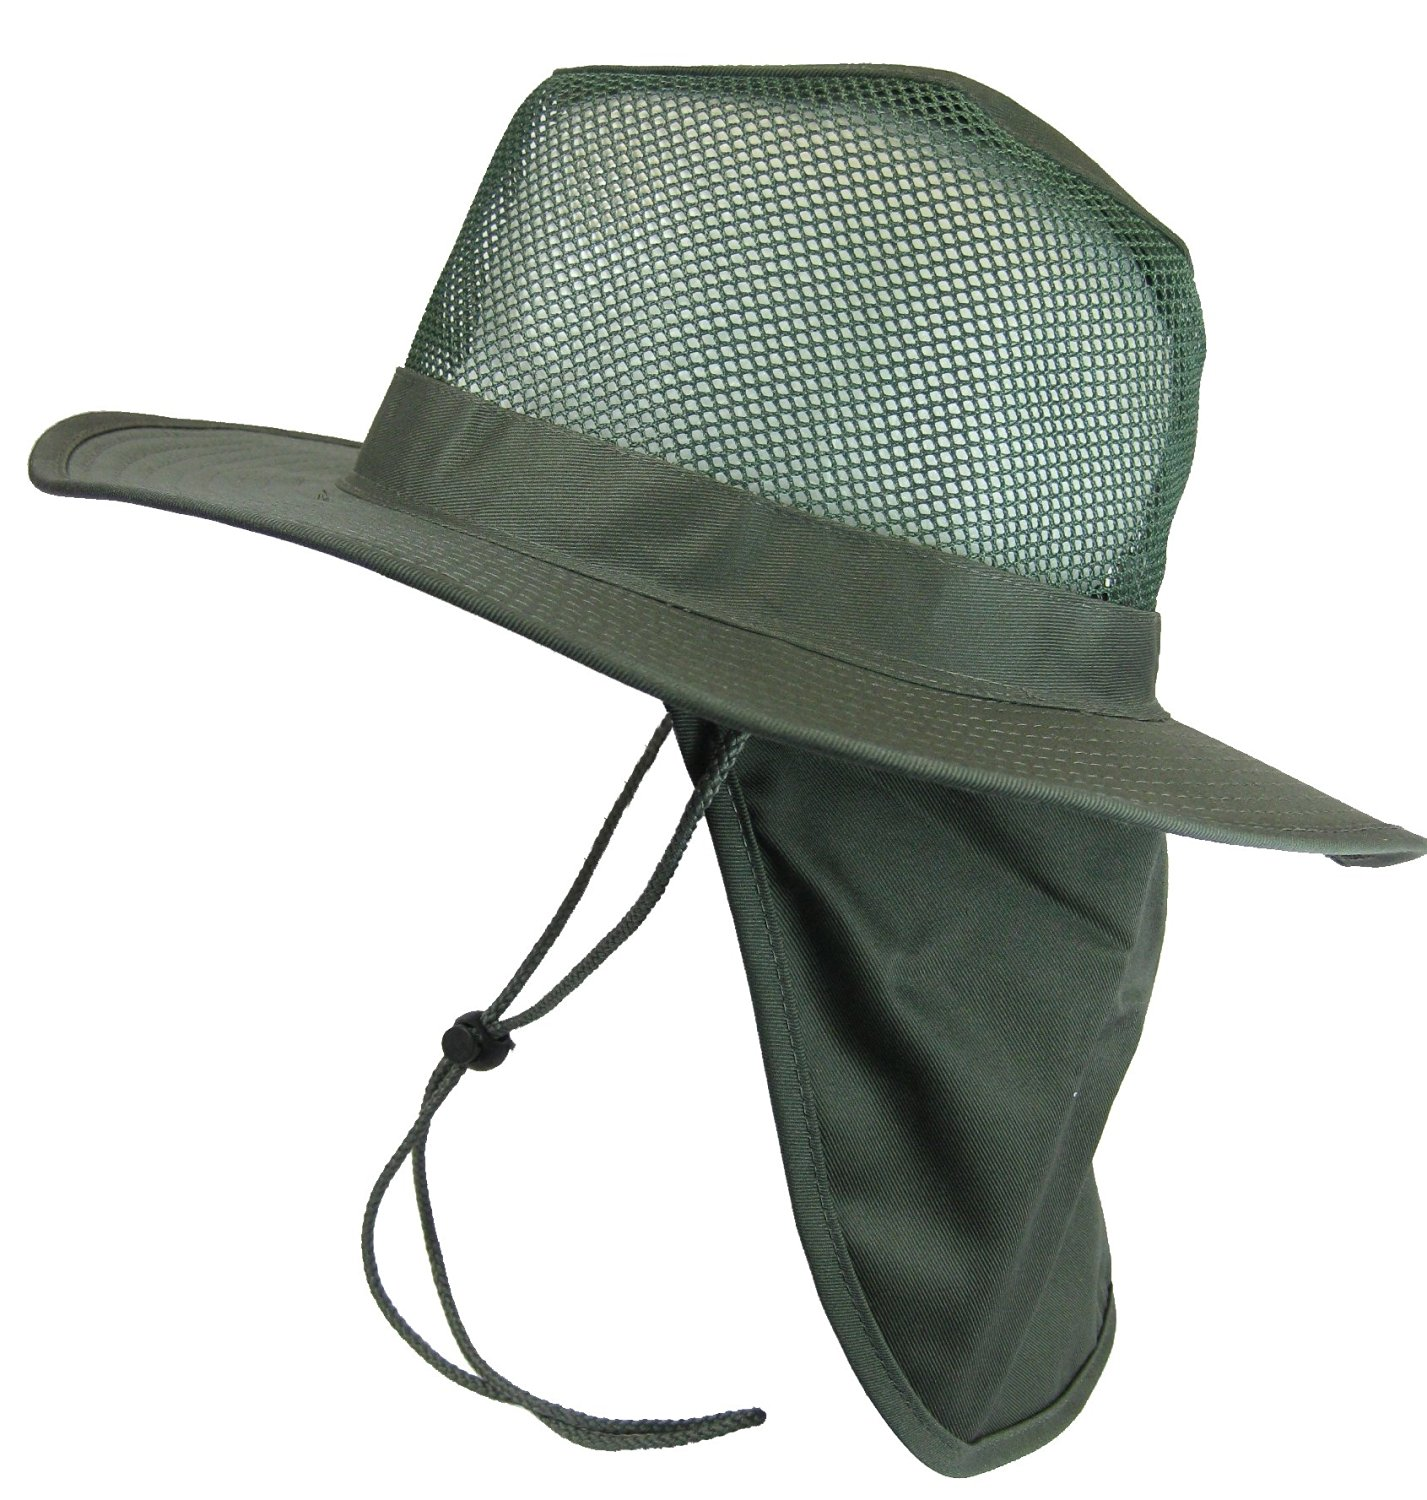 0cea15353ef Cool Mesh Military Camouflage Boonie Bush Safari Outdoor Fishing Hiking  Hunting Boating Brim Hat Sun Cap